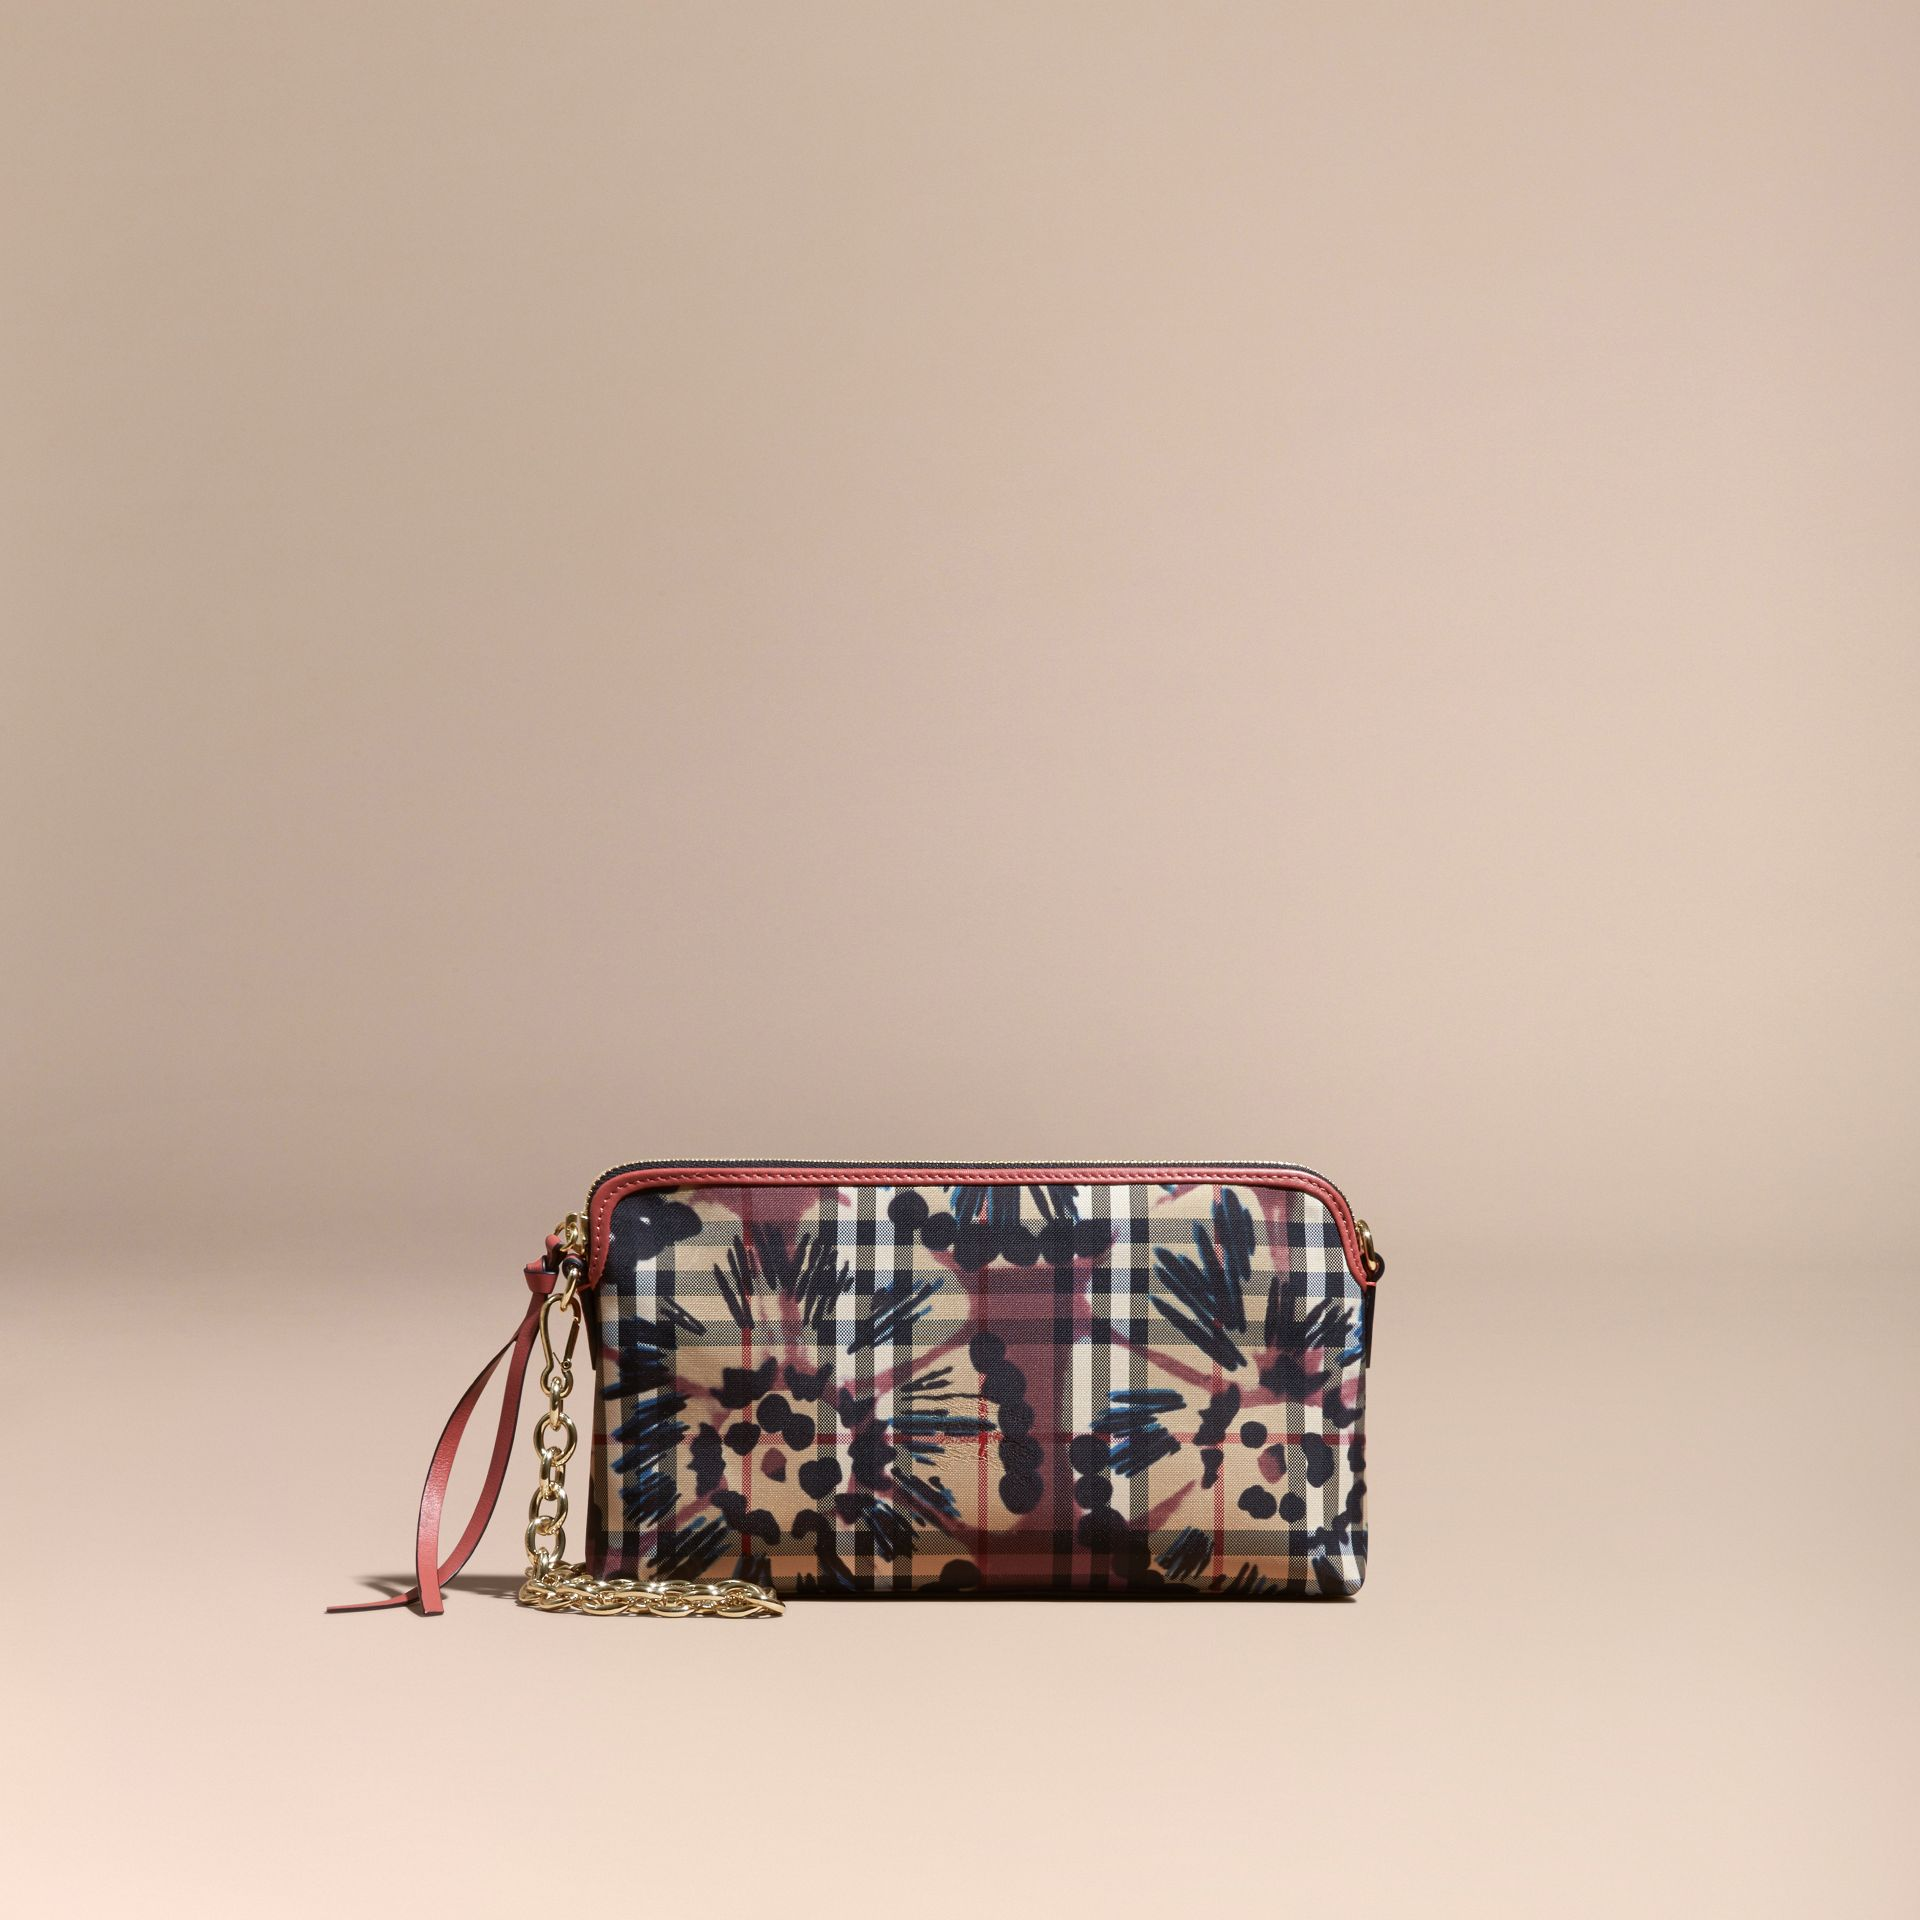 Mauve pink/antique rose Tie-dye Print Horseferry Check and Leather Clutch Bag Mauve Pink/antique Rose - gallery image 9